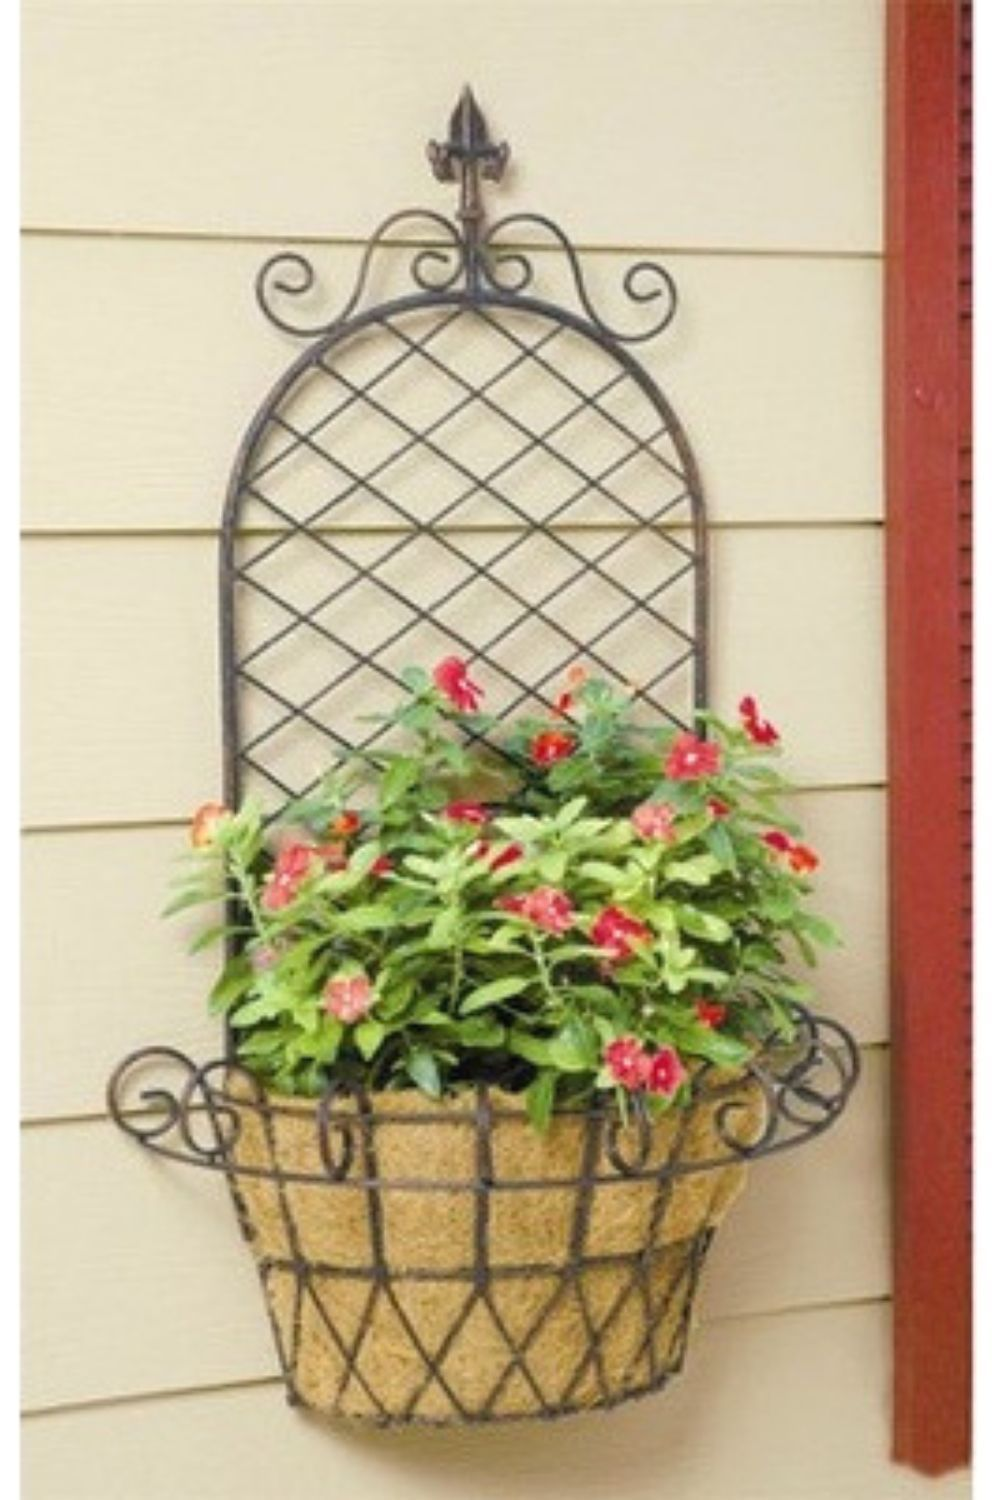 Creative Trellis Ideas To Add Beauty To Your Garden Wall Planter Baskets On Wall Metal Wall Planters